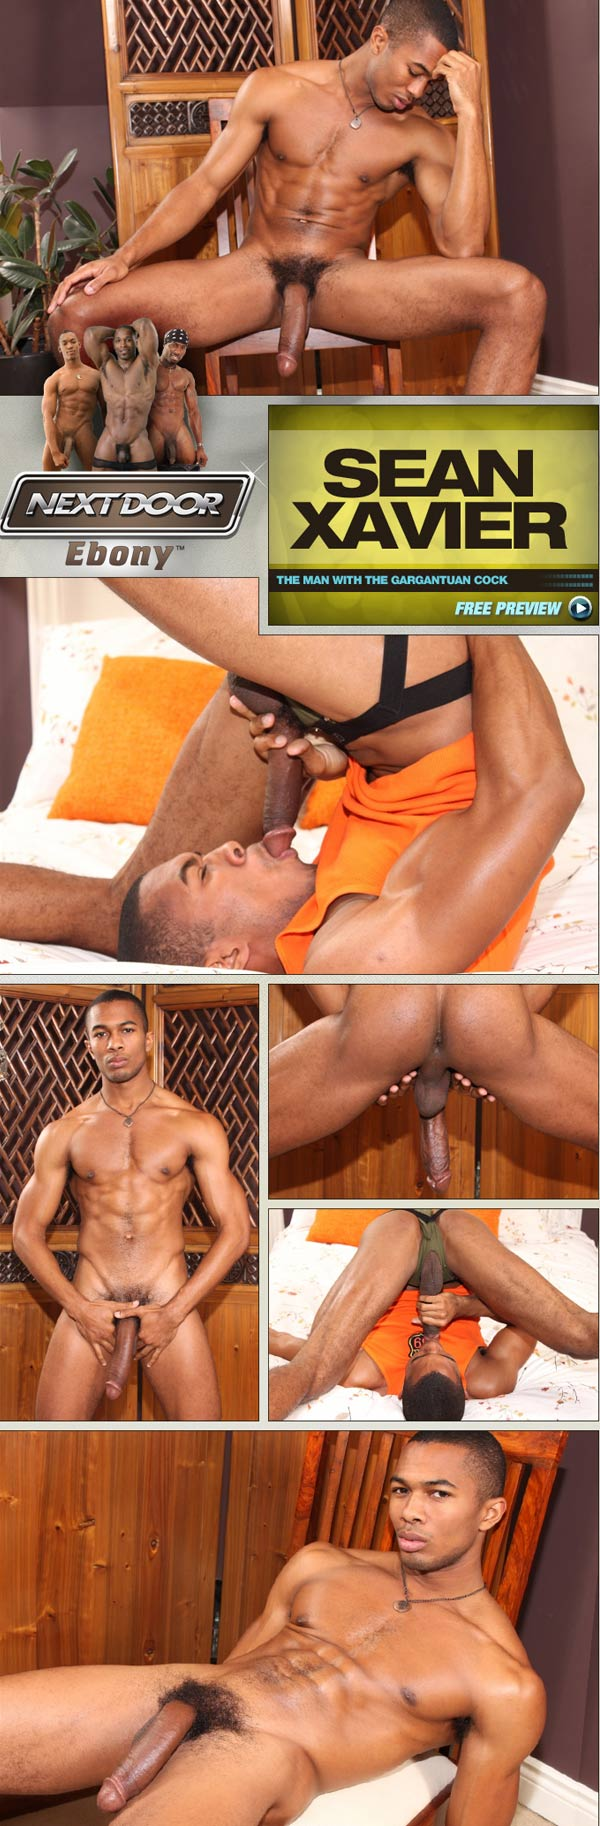 Sean Xavier (The Man With the Gargantuan Cock) at NextDoorEbony